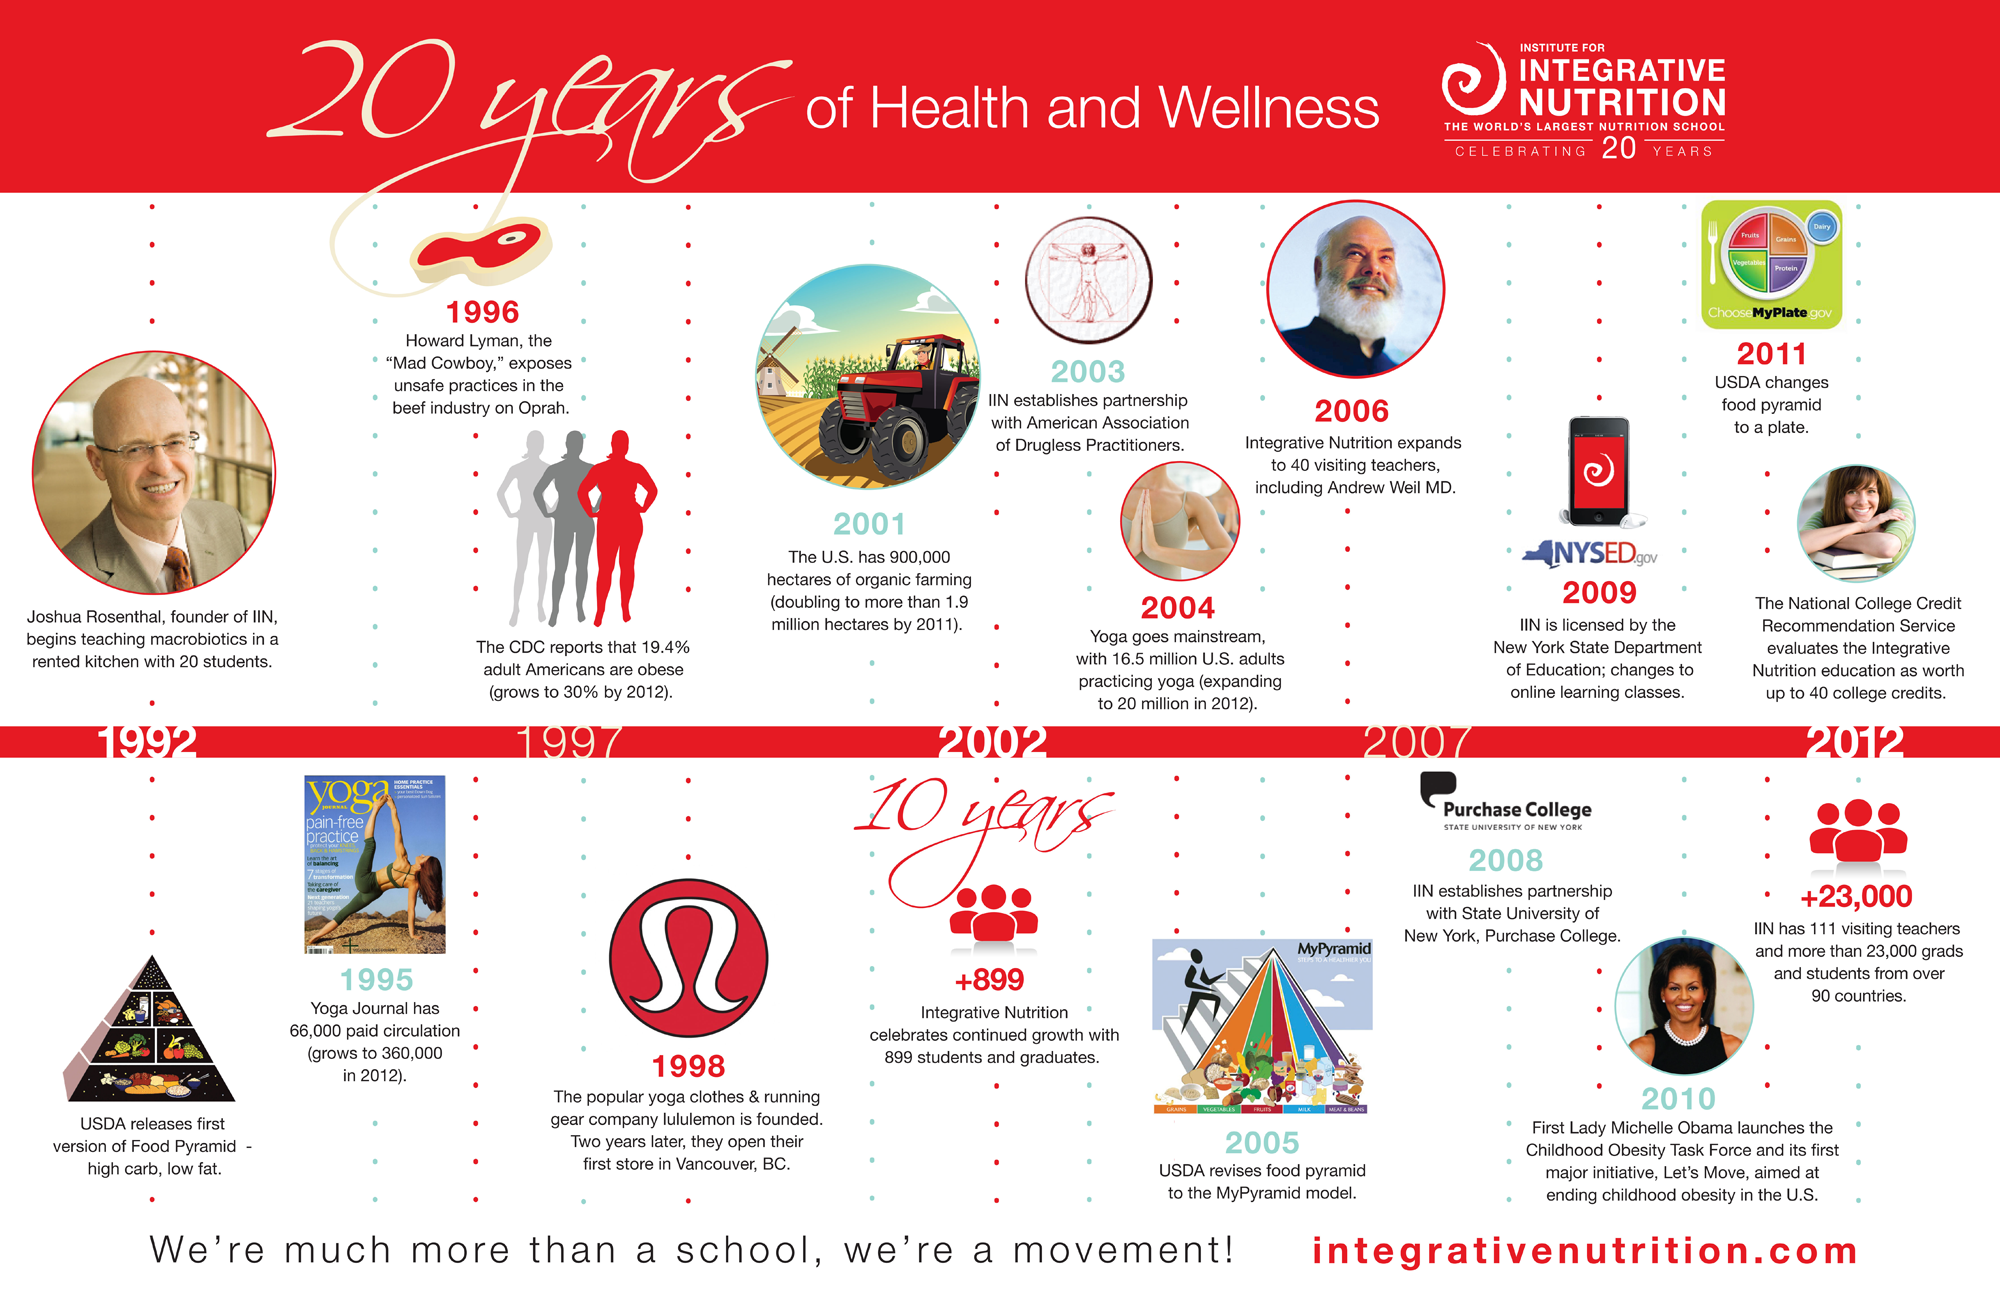 IIN celebrates 20 years of health and happiness